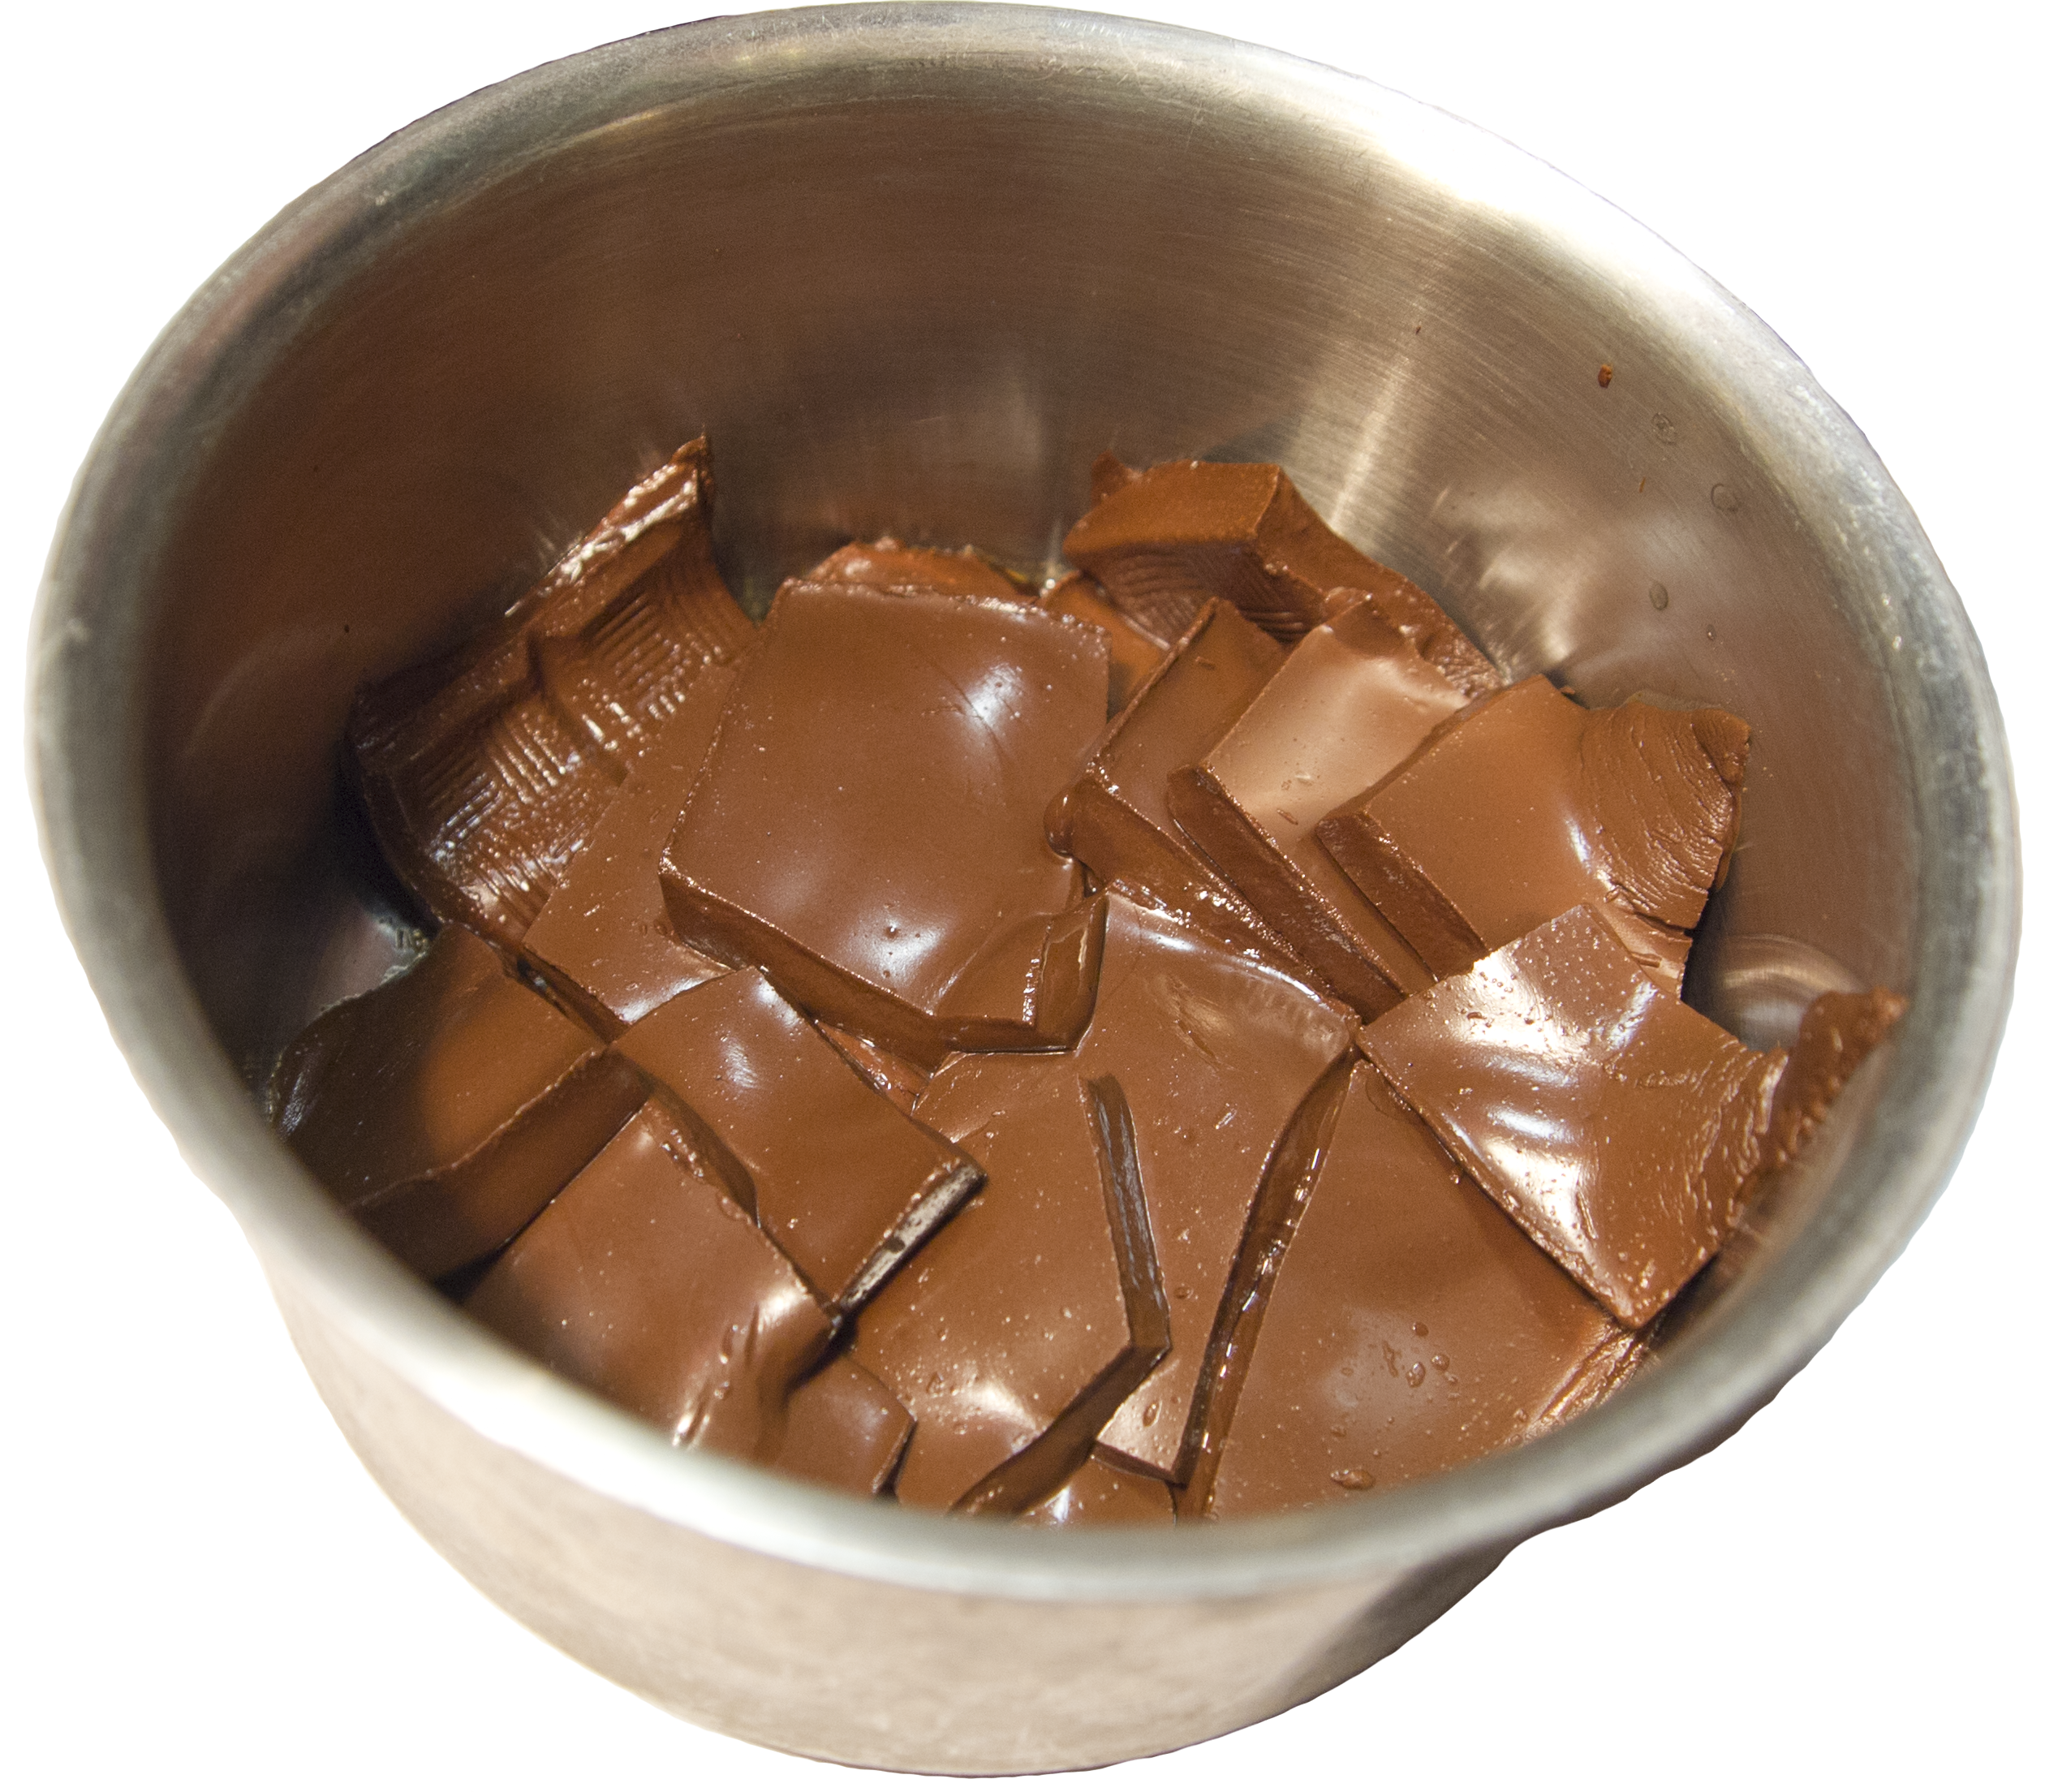 Melting Chocolate For Dipping Cake Pops